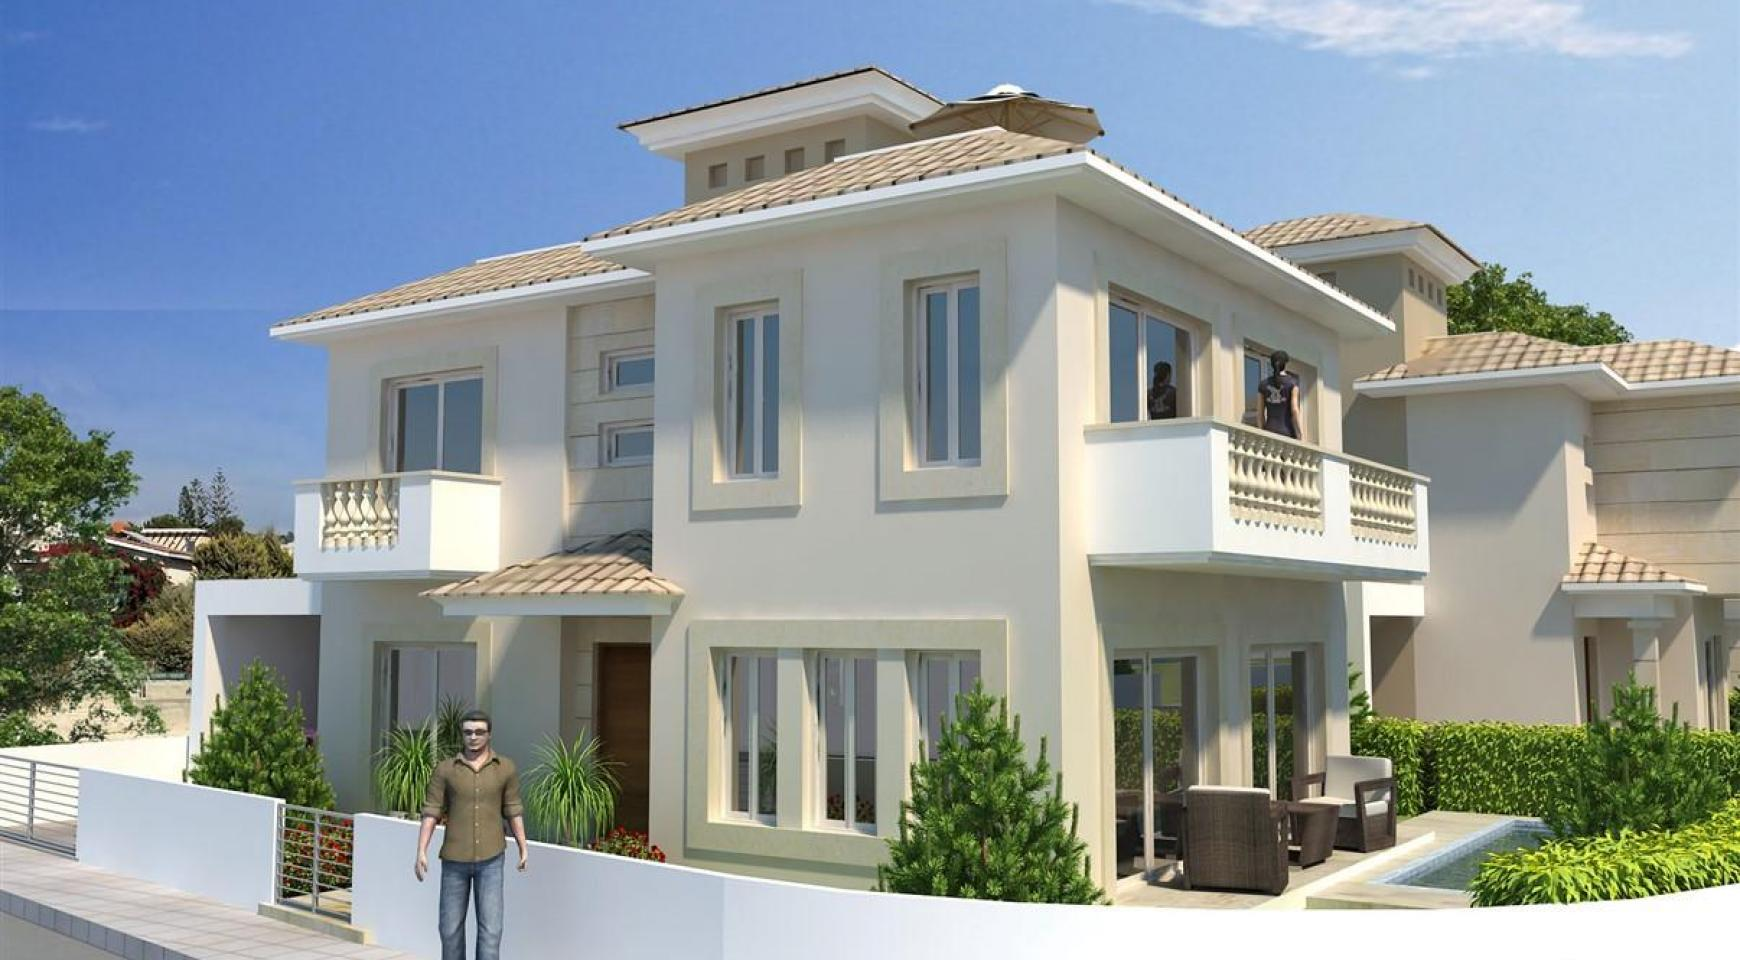 3 Bedroom Villa in New Project in Paphos - 22